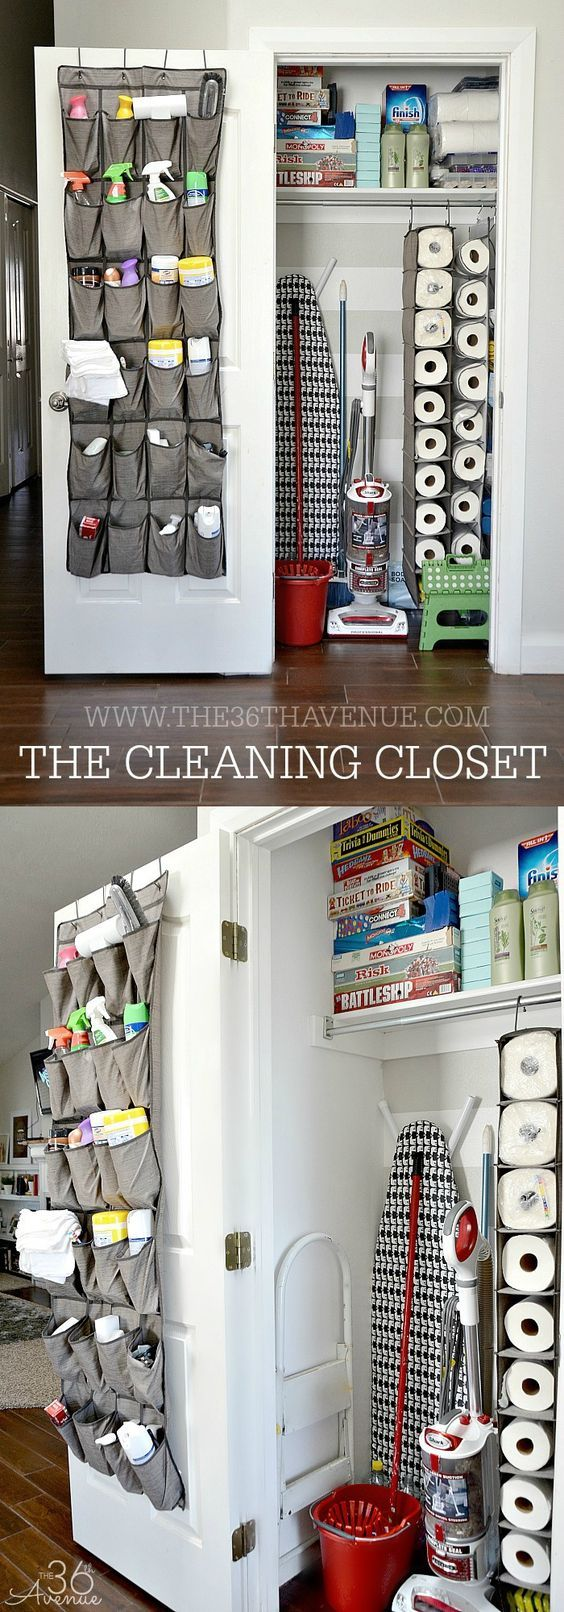 Cleaning Tips - DIY Cleaning Closet. Apartment Kitchen OrganizationCloset  ...